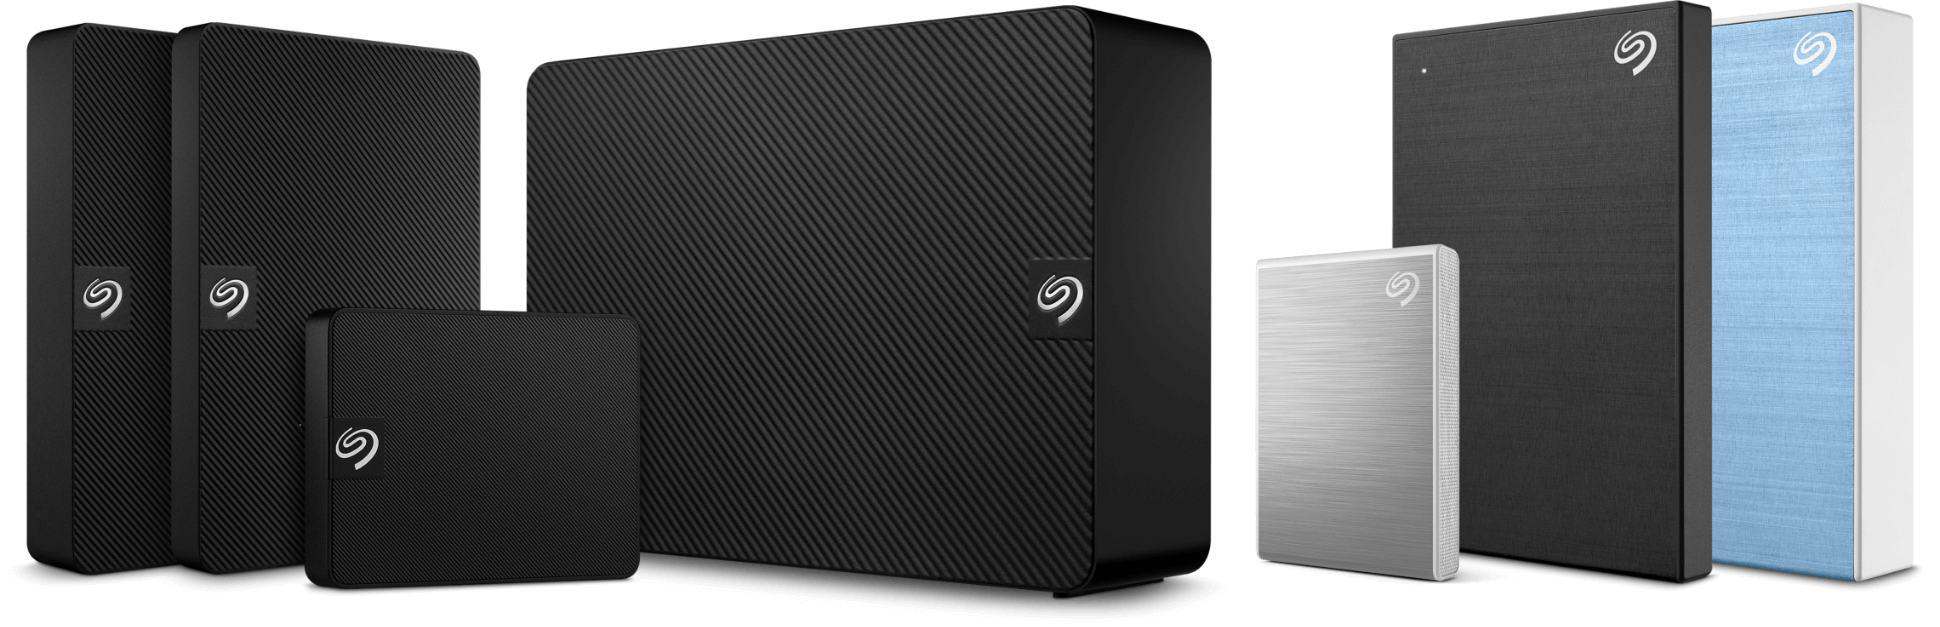 Seagate Product Family